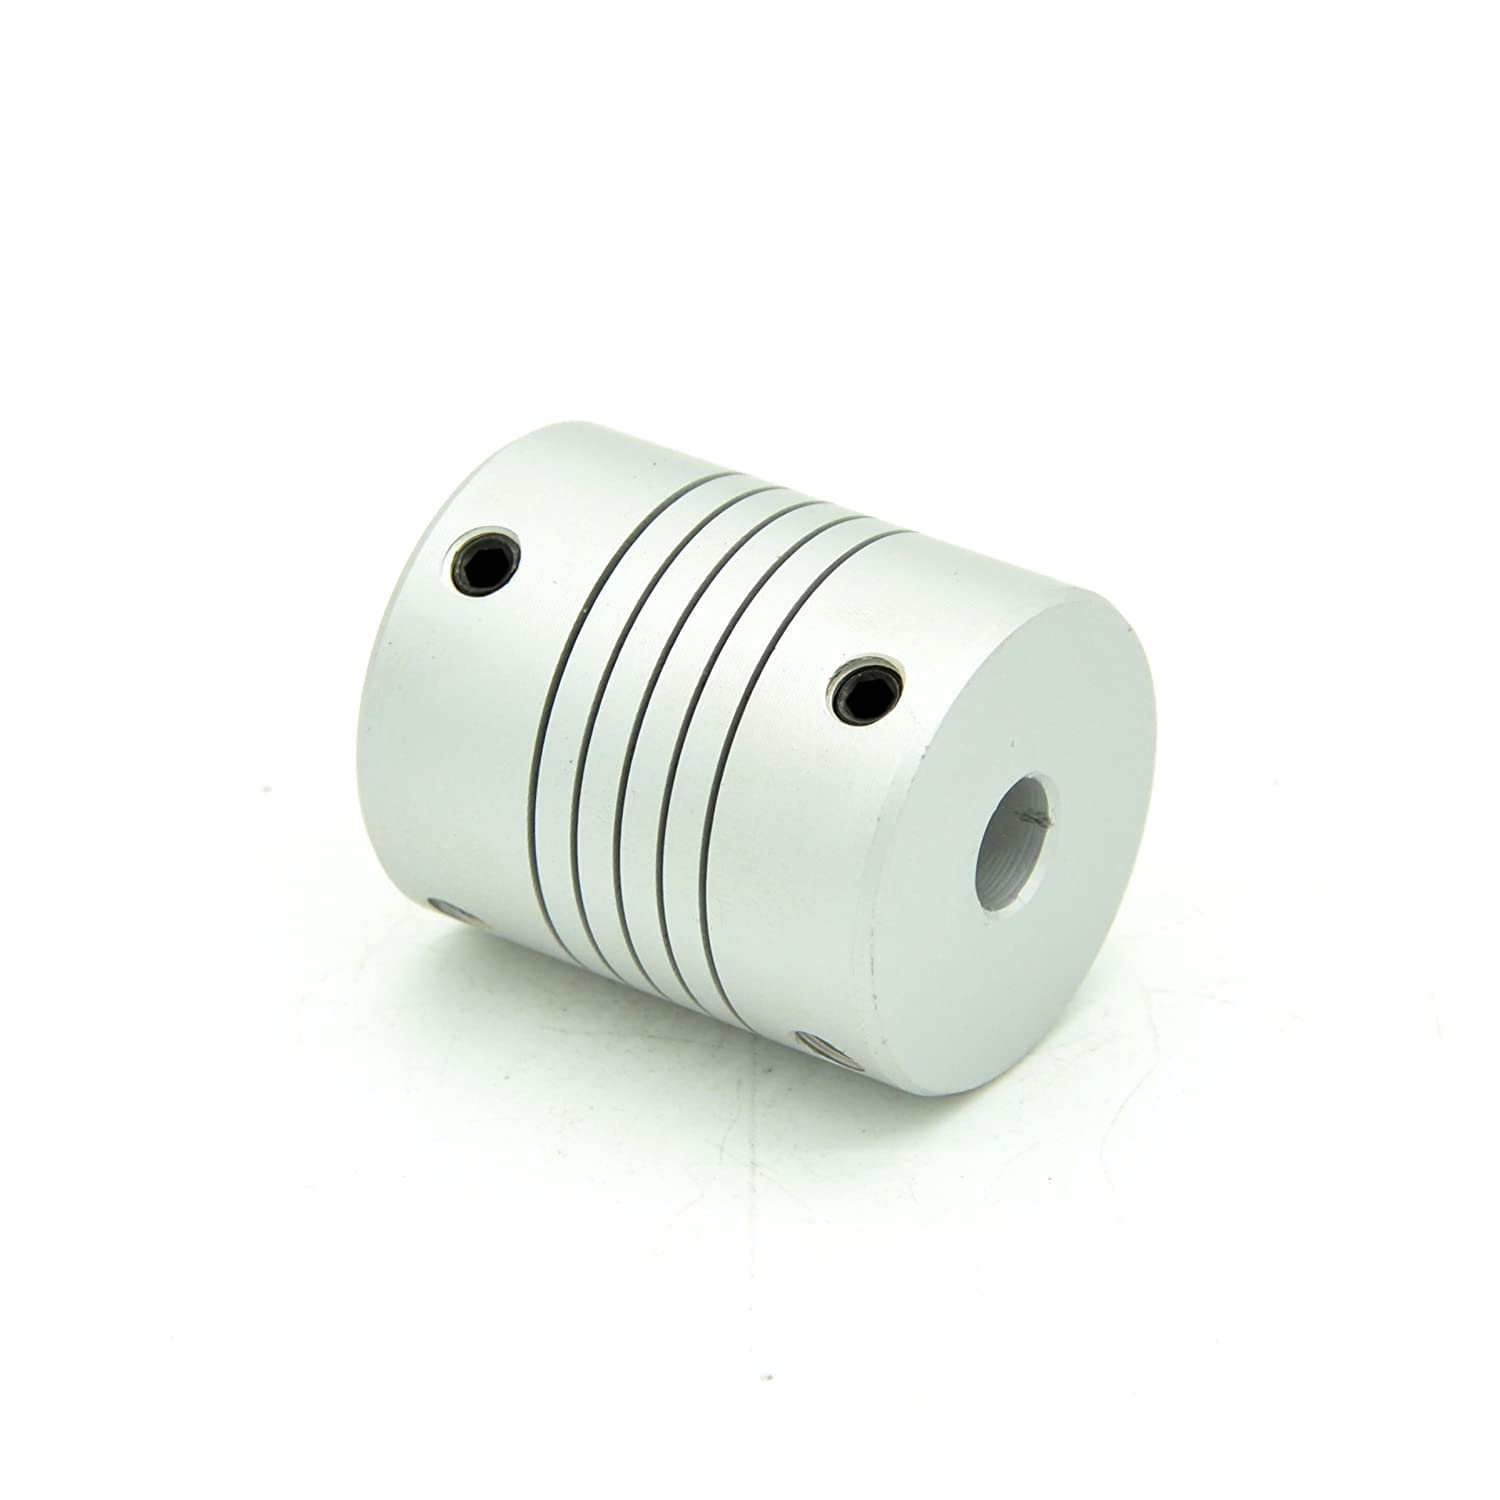 RobotDigg FCD12-635to12 Flexible Coupling 6.35mm to 12mm Aluminum Alloy Beam Coupling Silver Color Flexible Clamping Coupler Pack of 4pcs